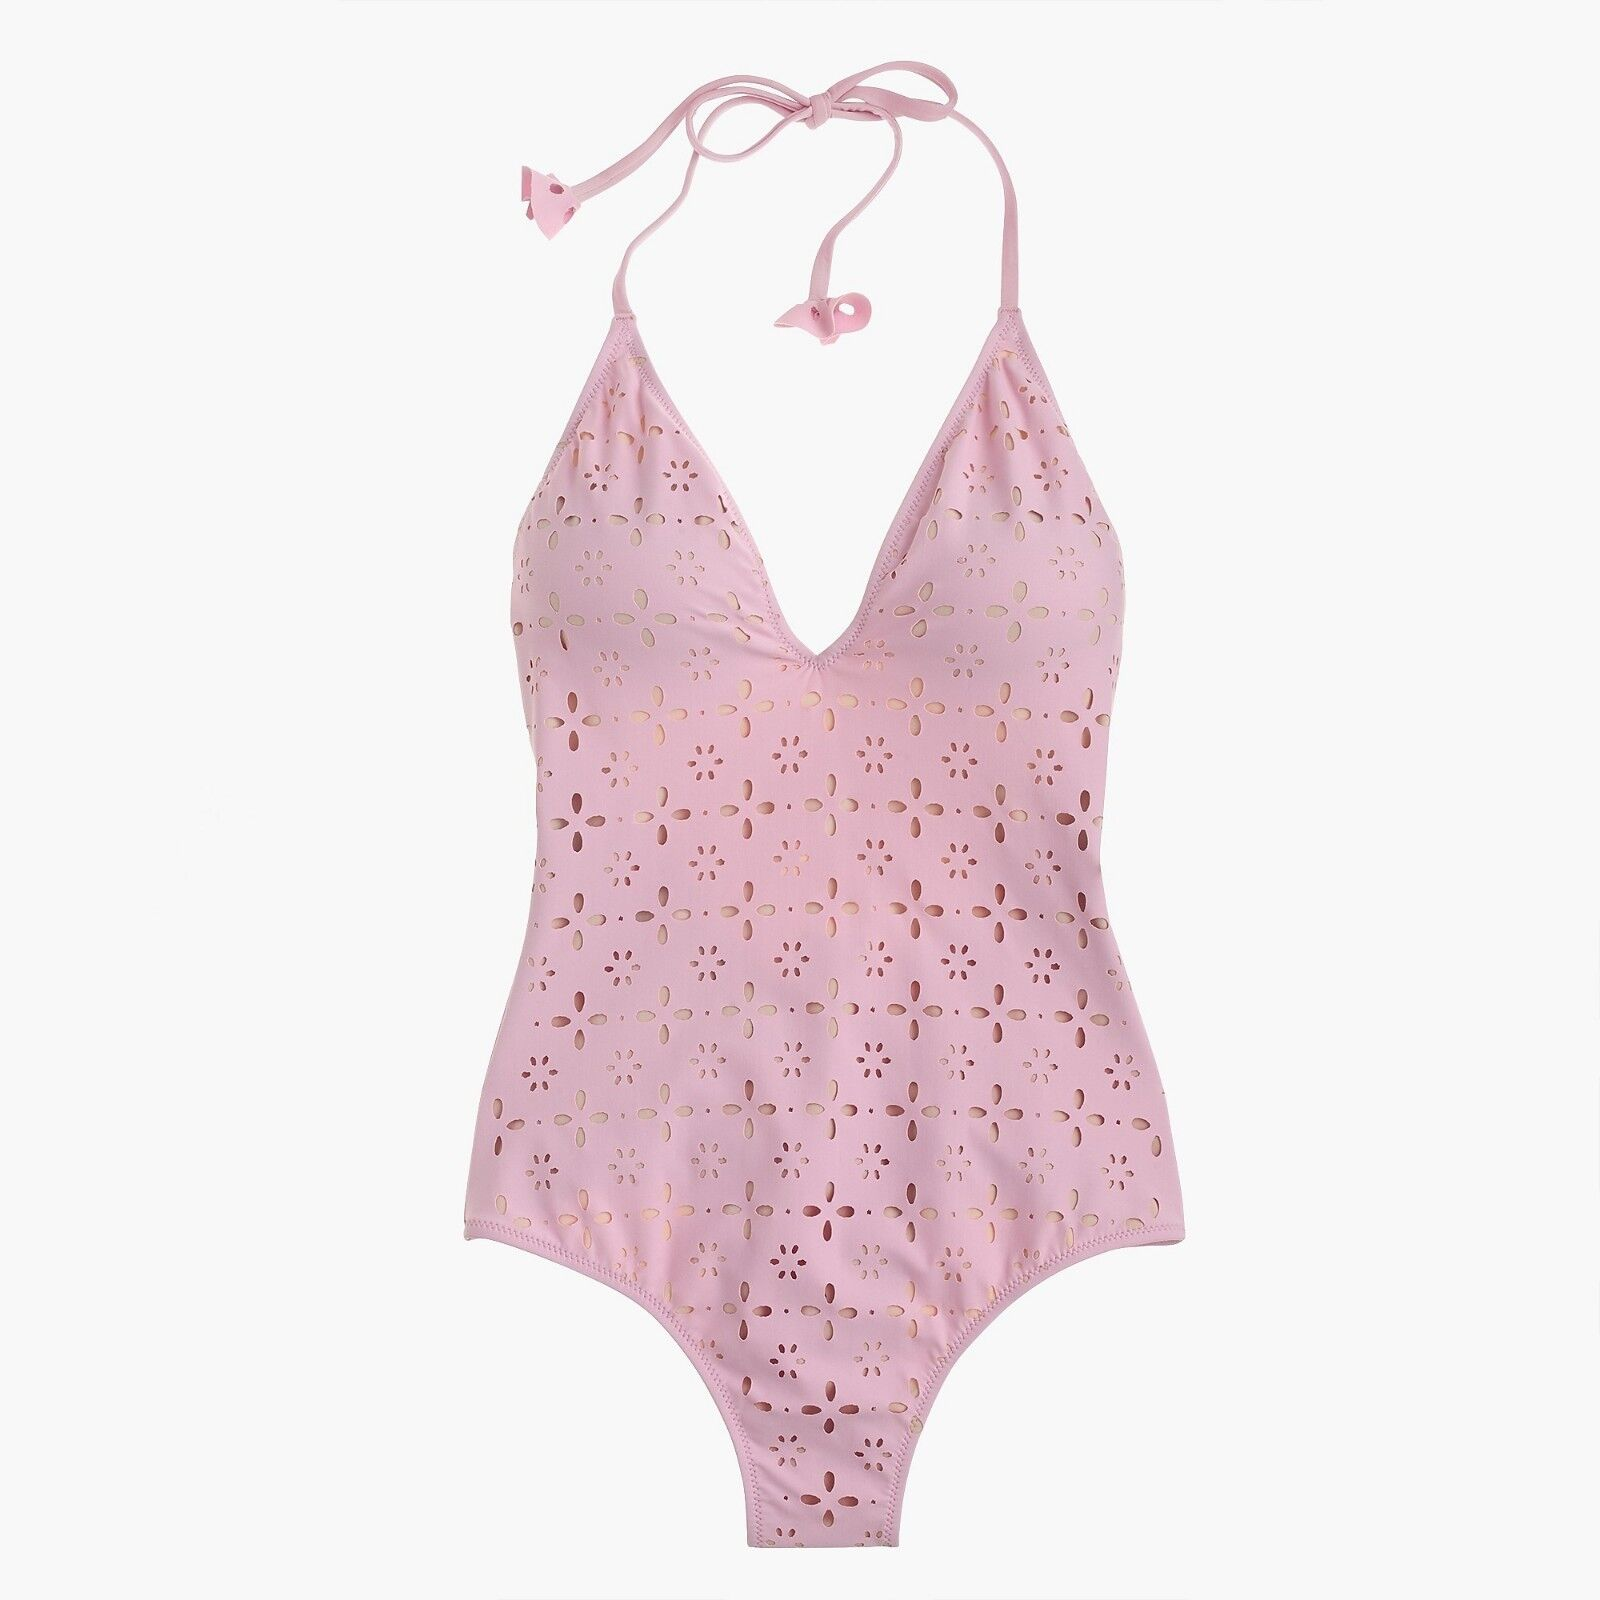 NWT J. Crew Halter One-Piece Swimsuit in Laser-Cut Eyelet - Berry bluesh - Size 6